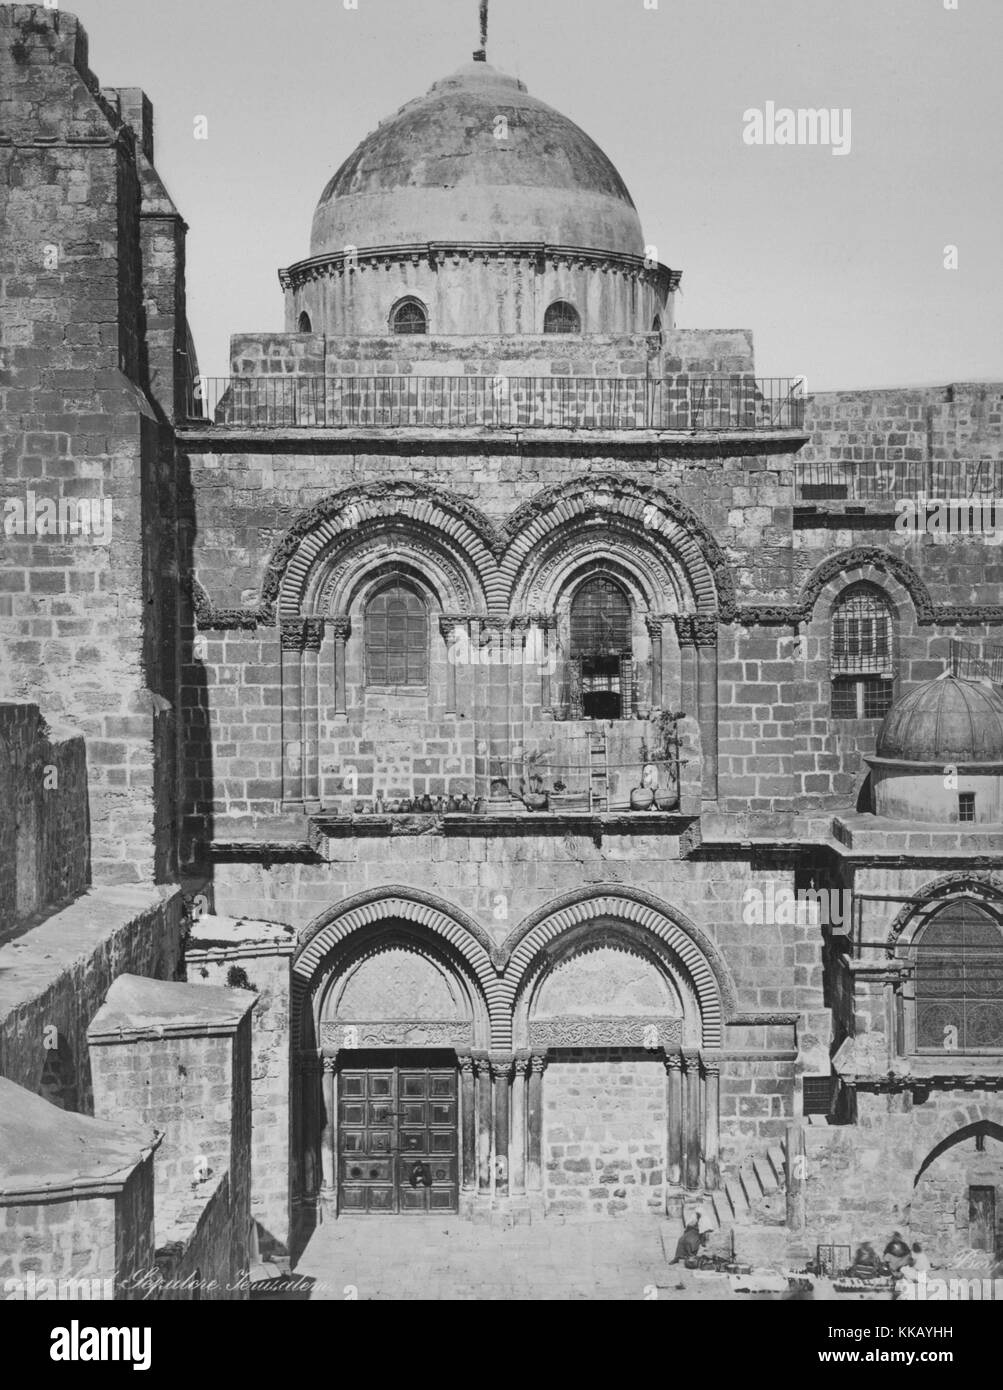 A photograph of the entrance to the Church of the Holy Sepulchre, the building is a stone work structure that has - Stock Image